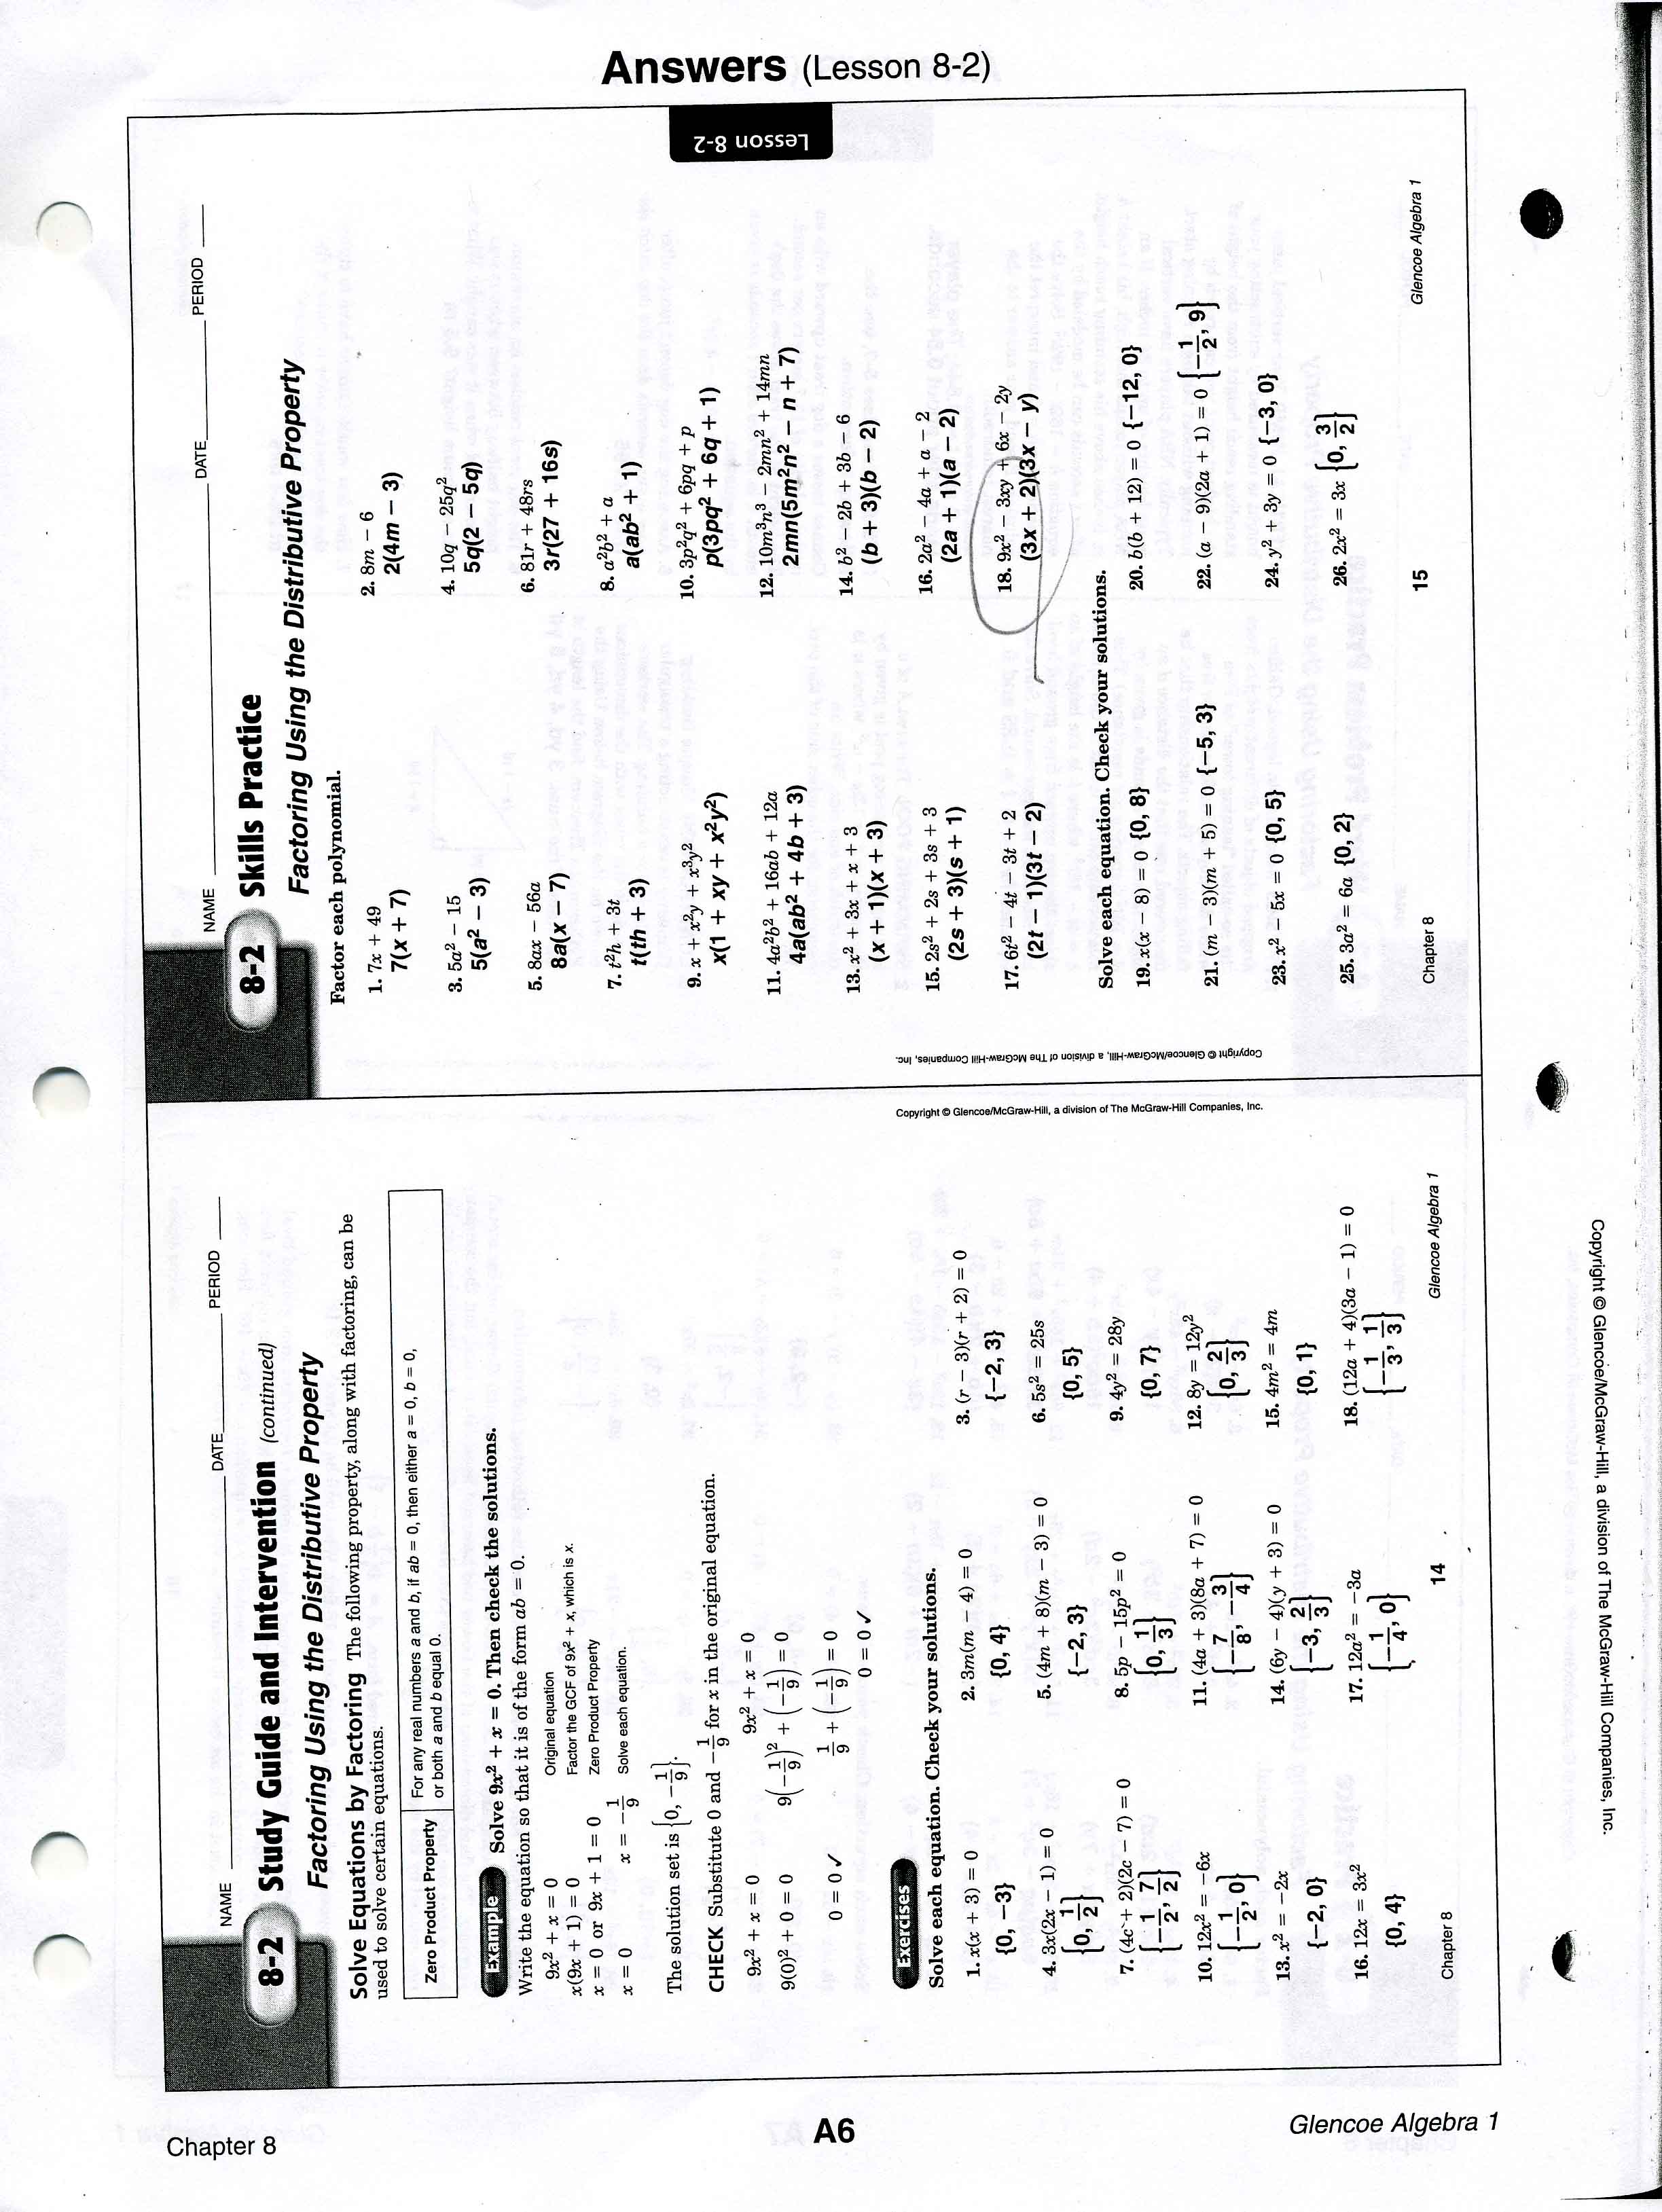 worksheet Algebra 1 Worksheet mrscabral algebra 1 worksheet answers worksheets 8 2